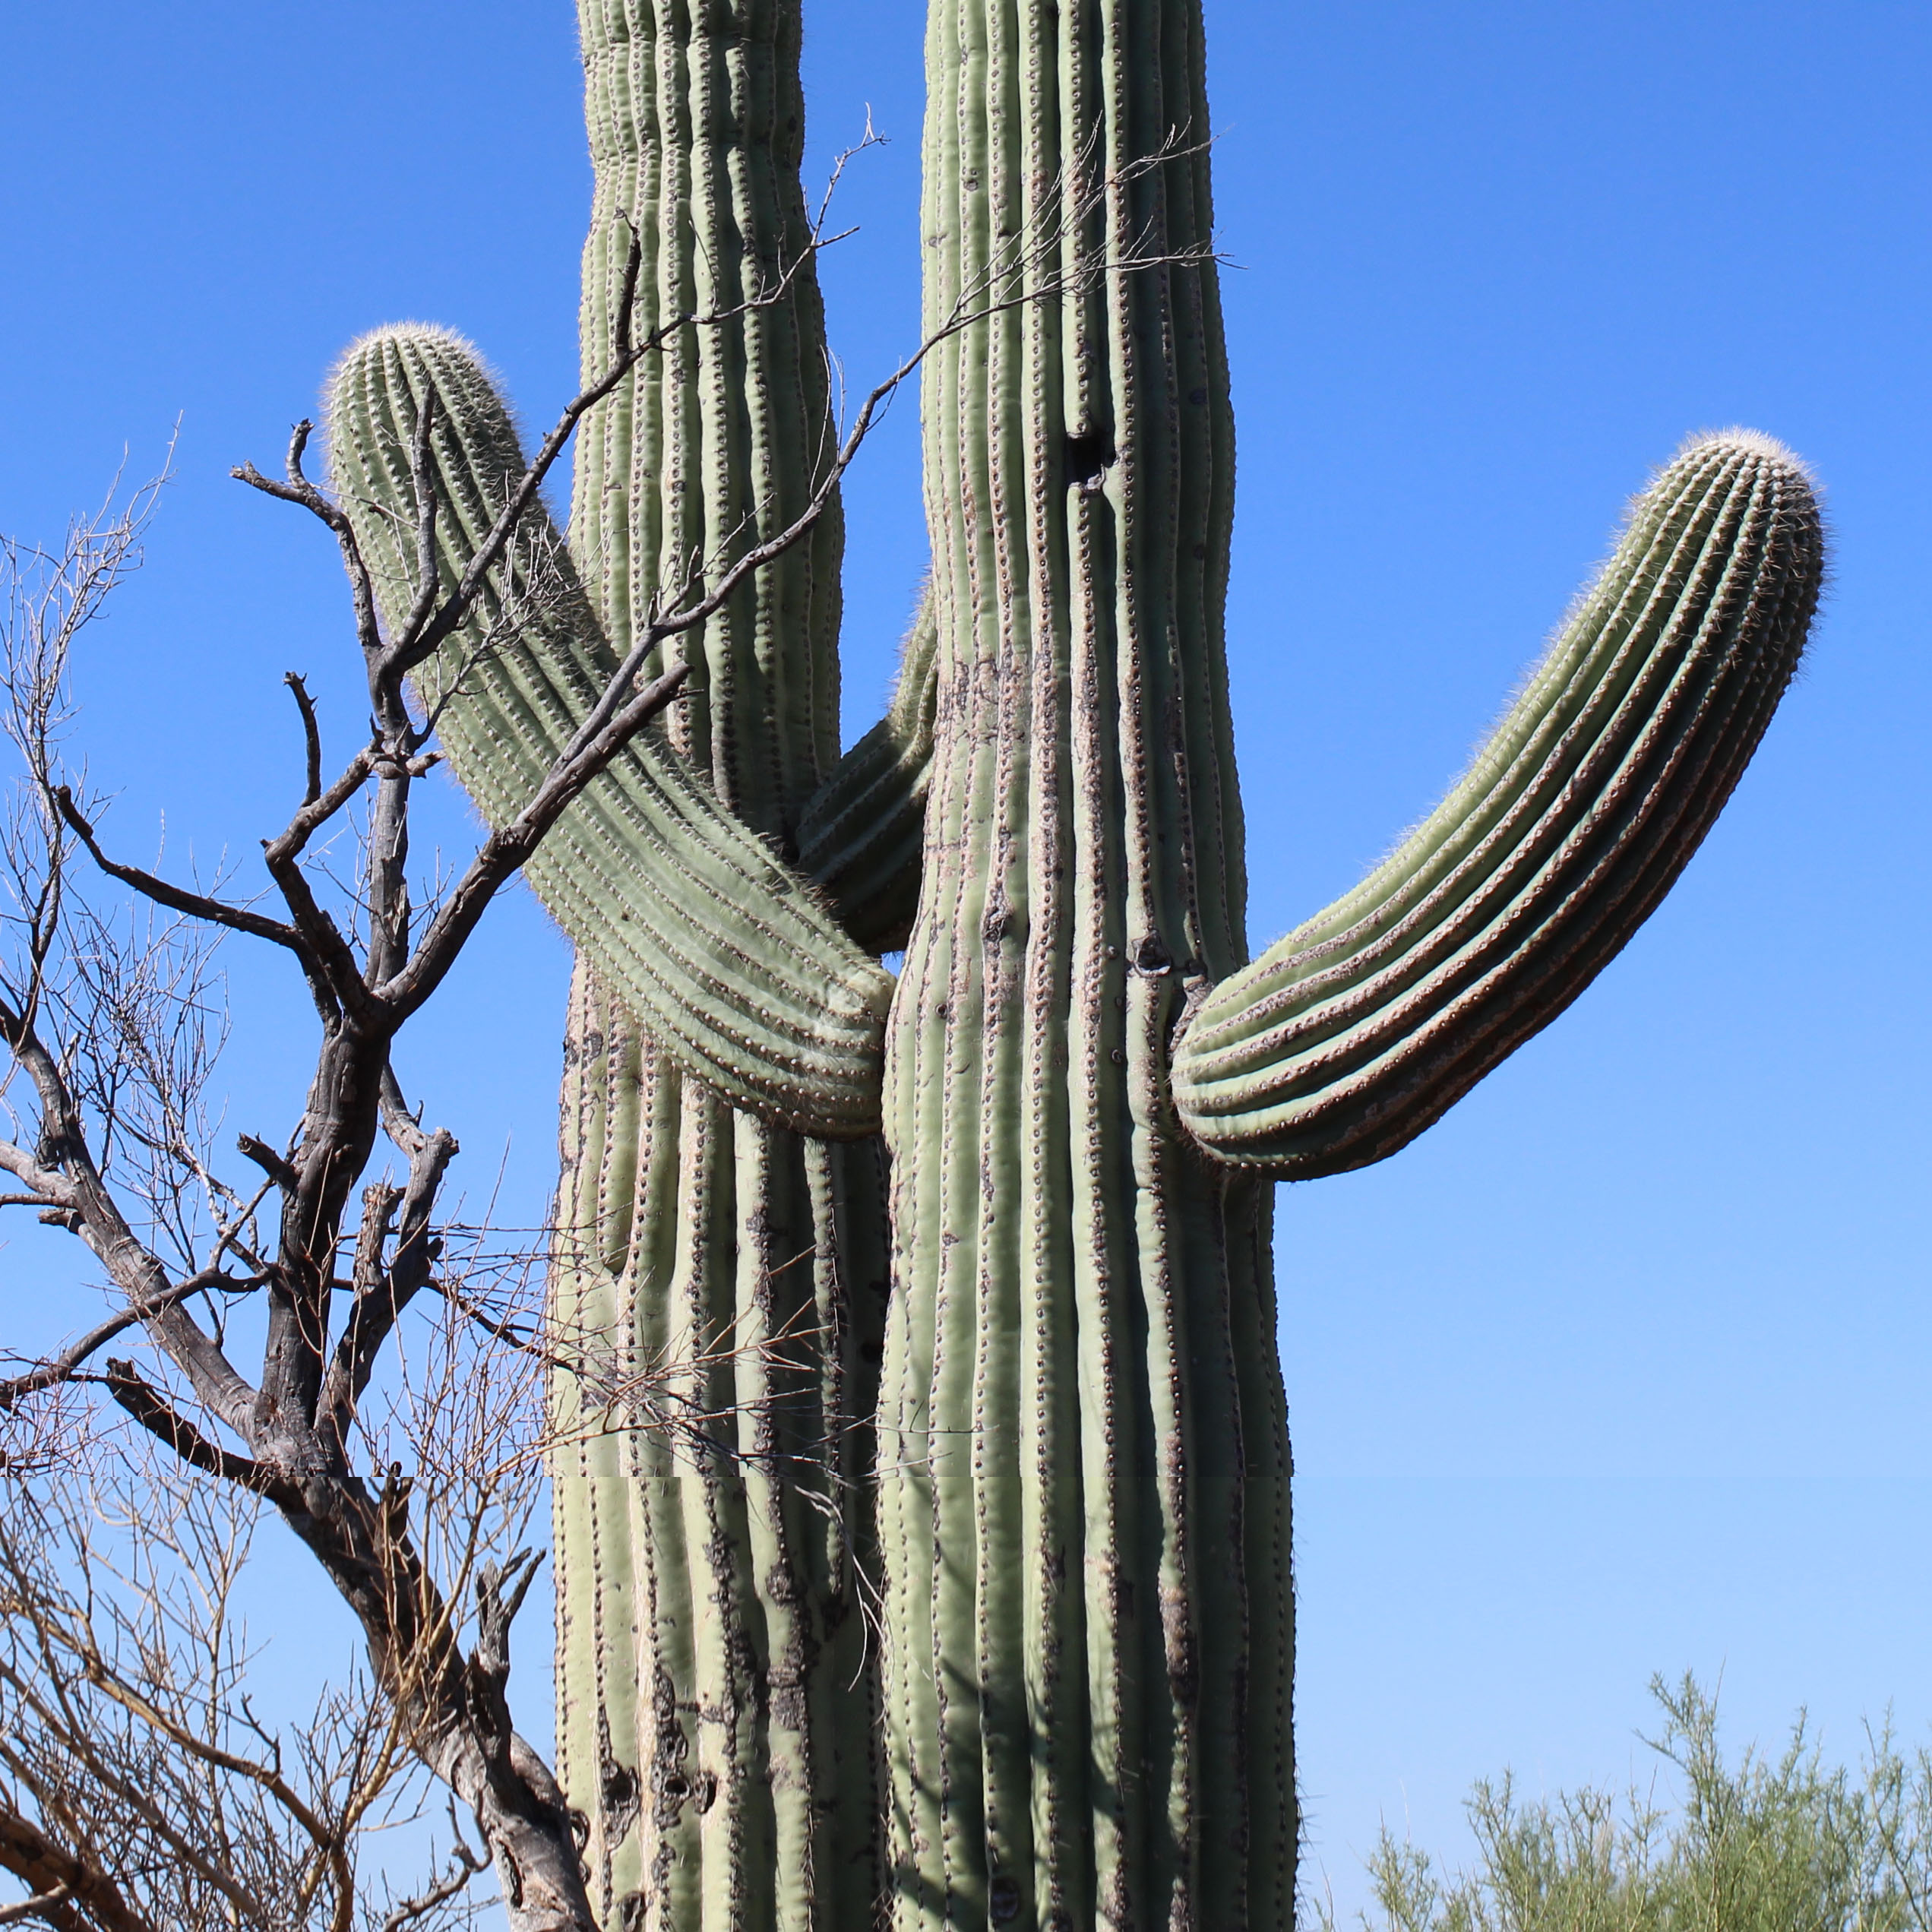 Nurse Trees And Saguaro Cacti